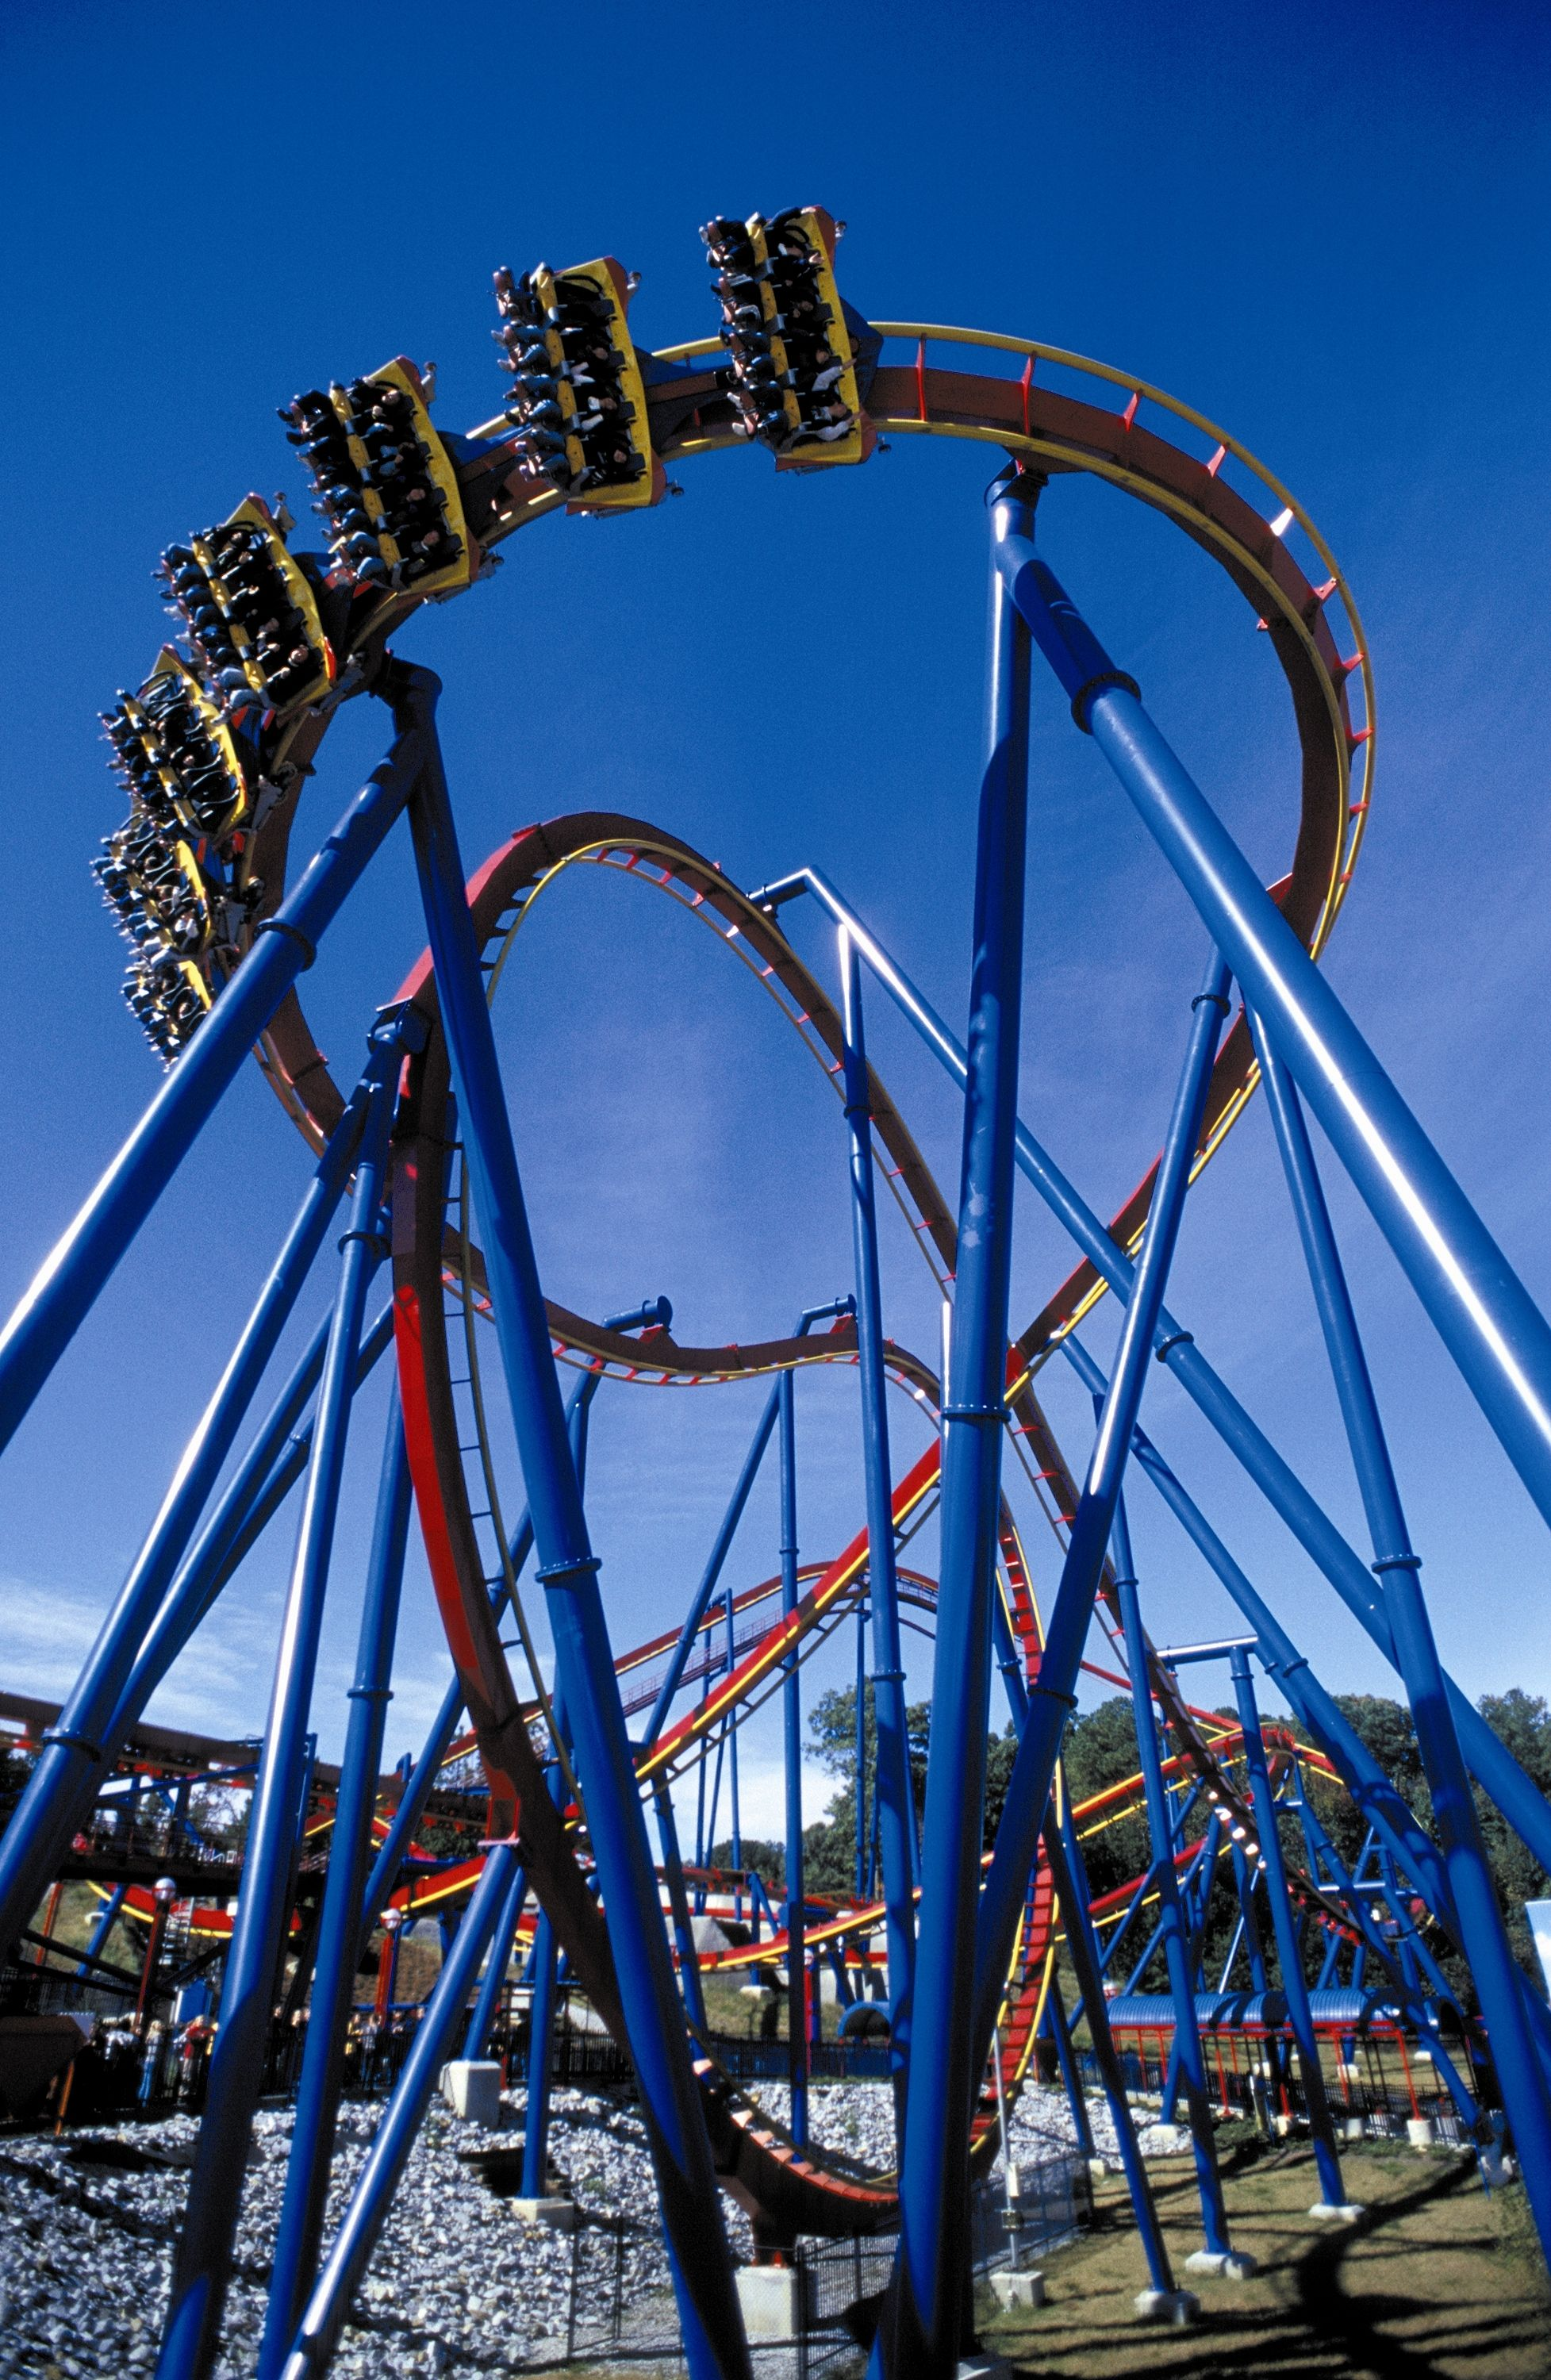 Superman Thrill Rides Cbs Chicago Scary Roller Coasters Roller Coaster Ride Thrill Ride